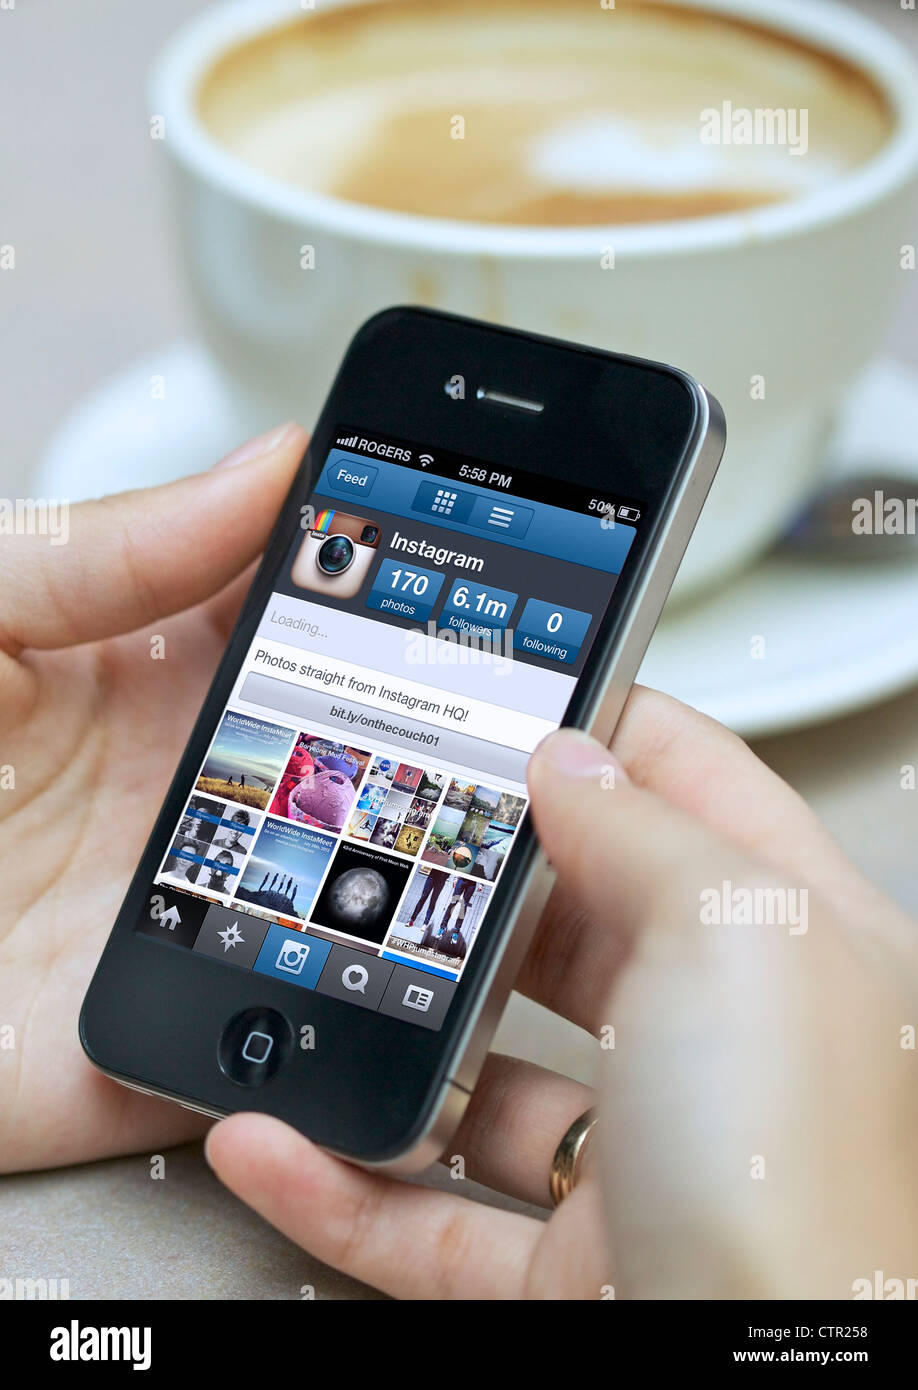 Close up picture of woman handholding an iphone using Instagram camera app - Stock Image